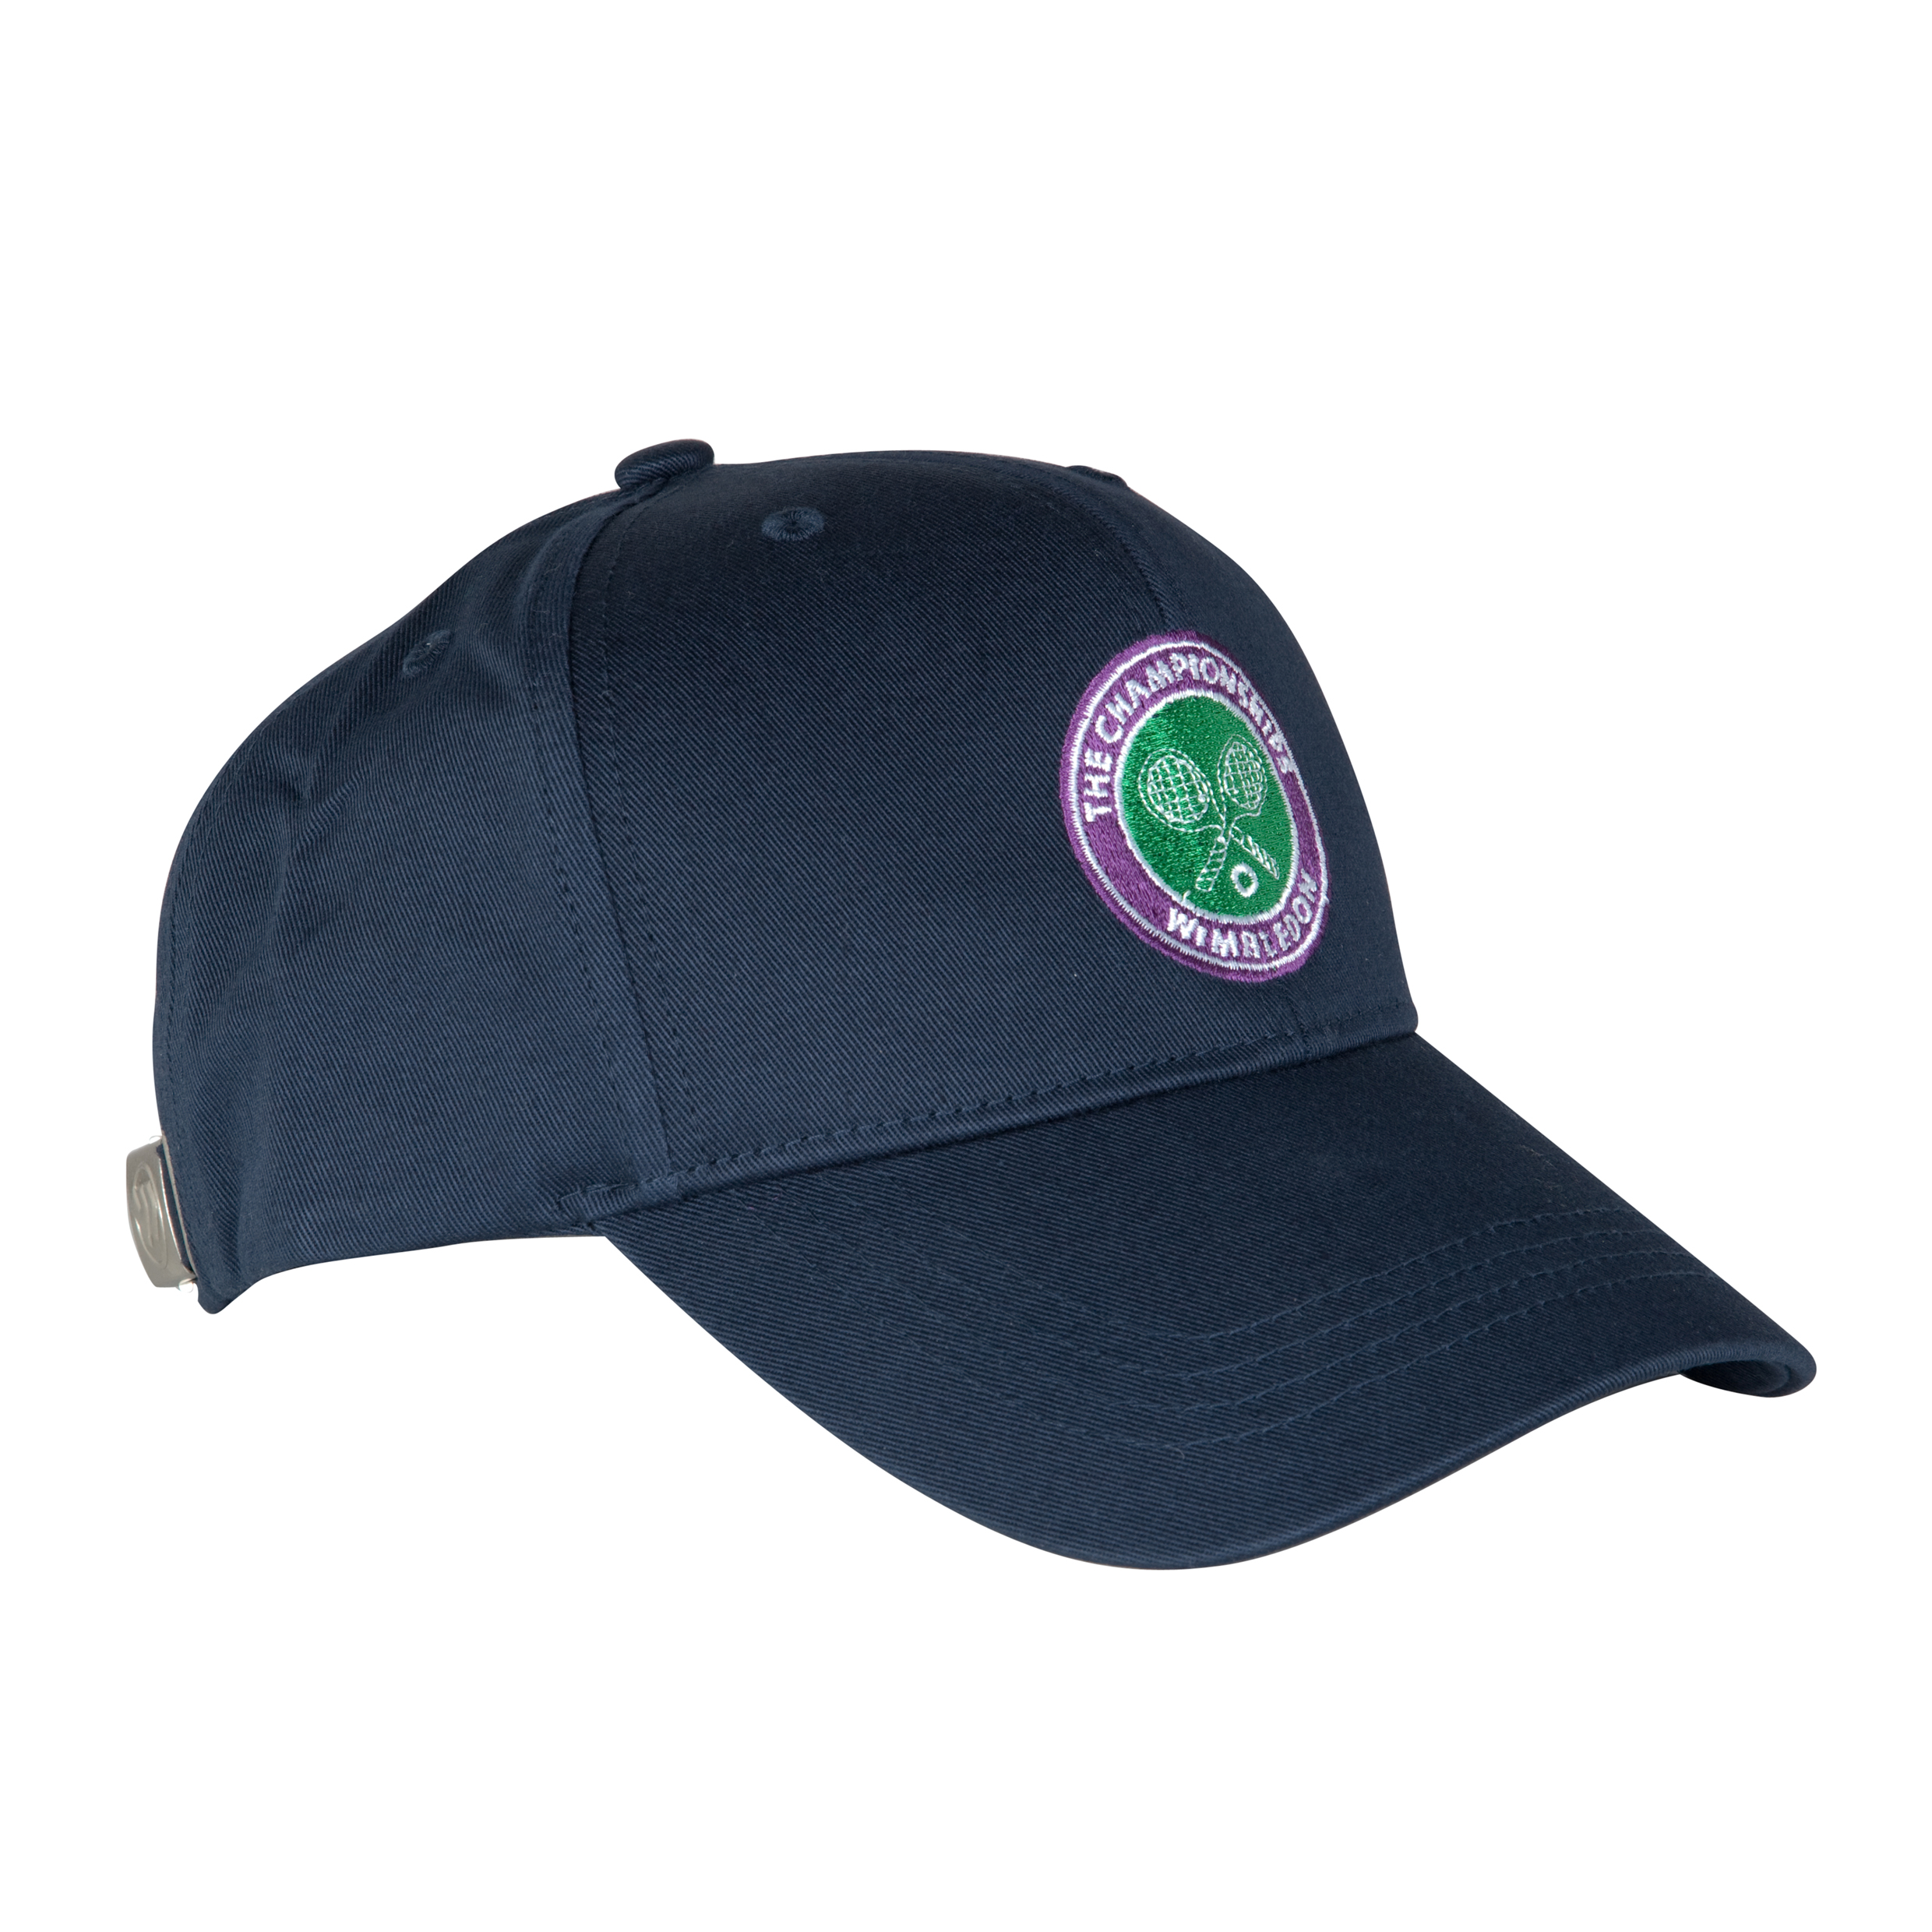 Wimbledon Crossed Rackets Cap - Navy - Kids